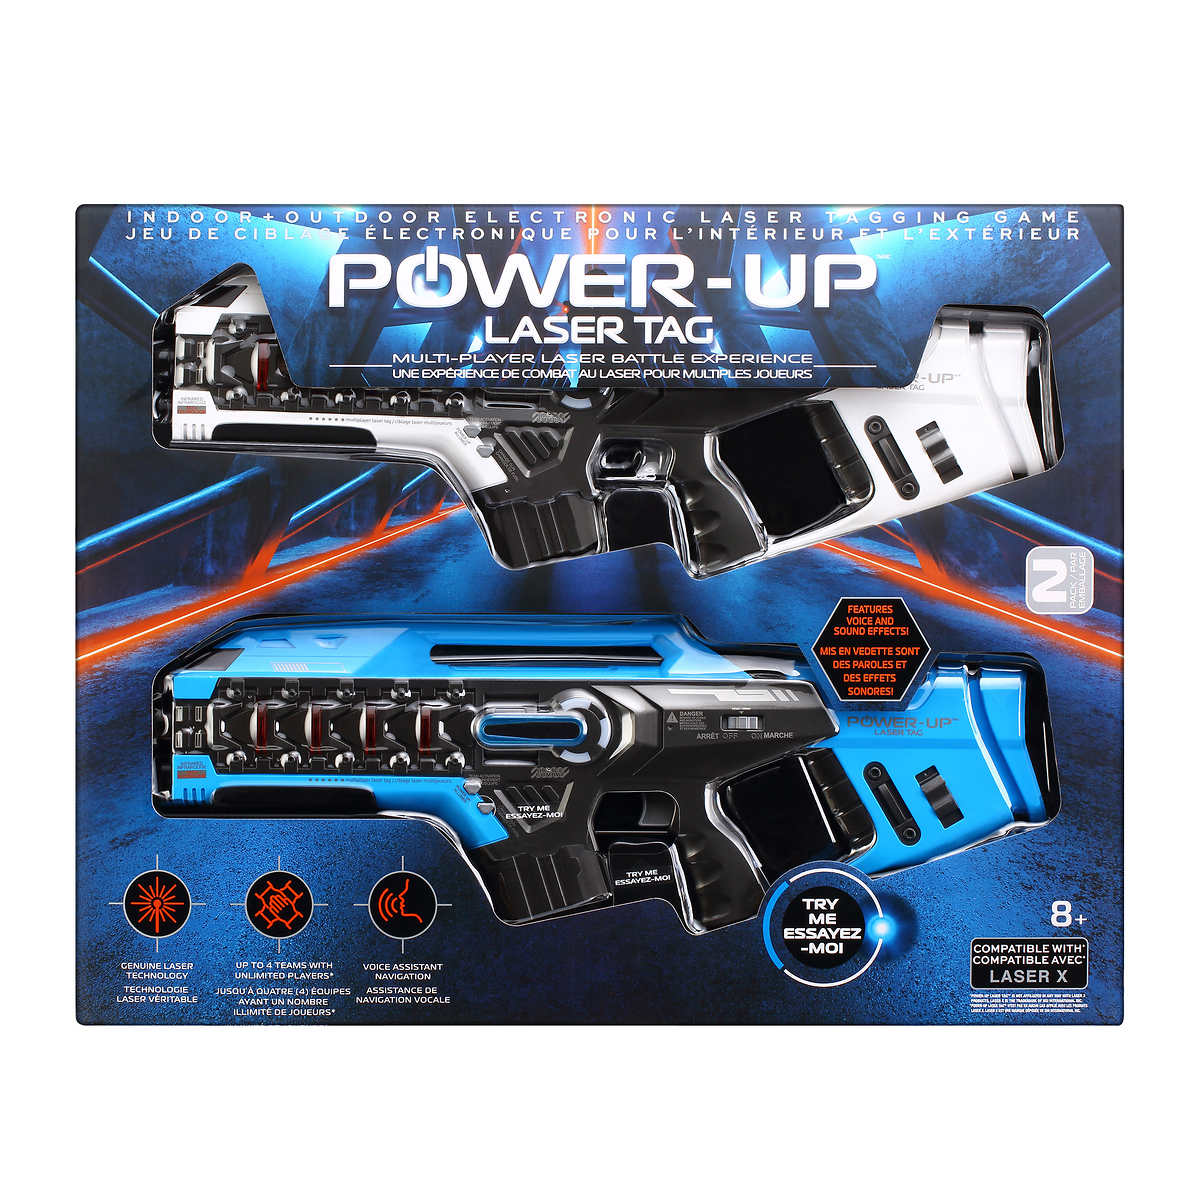 Power Up Multi-Player Laser Battle Experience 2 players